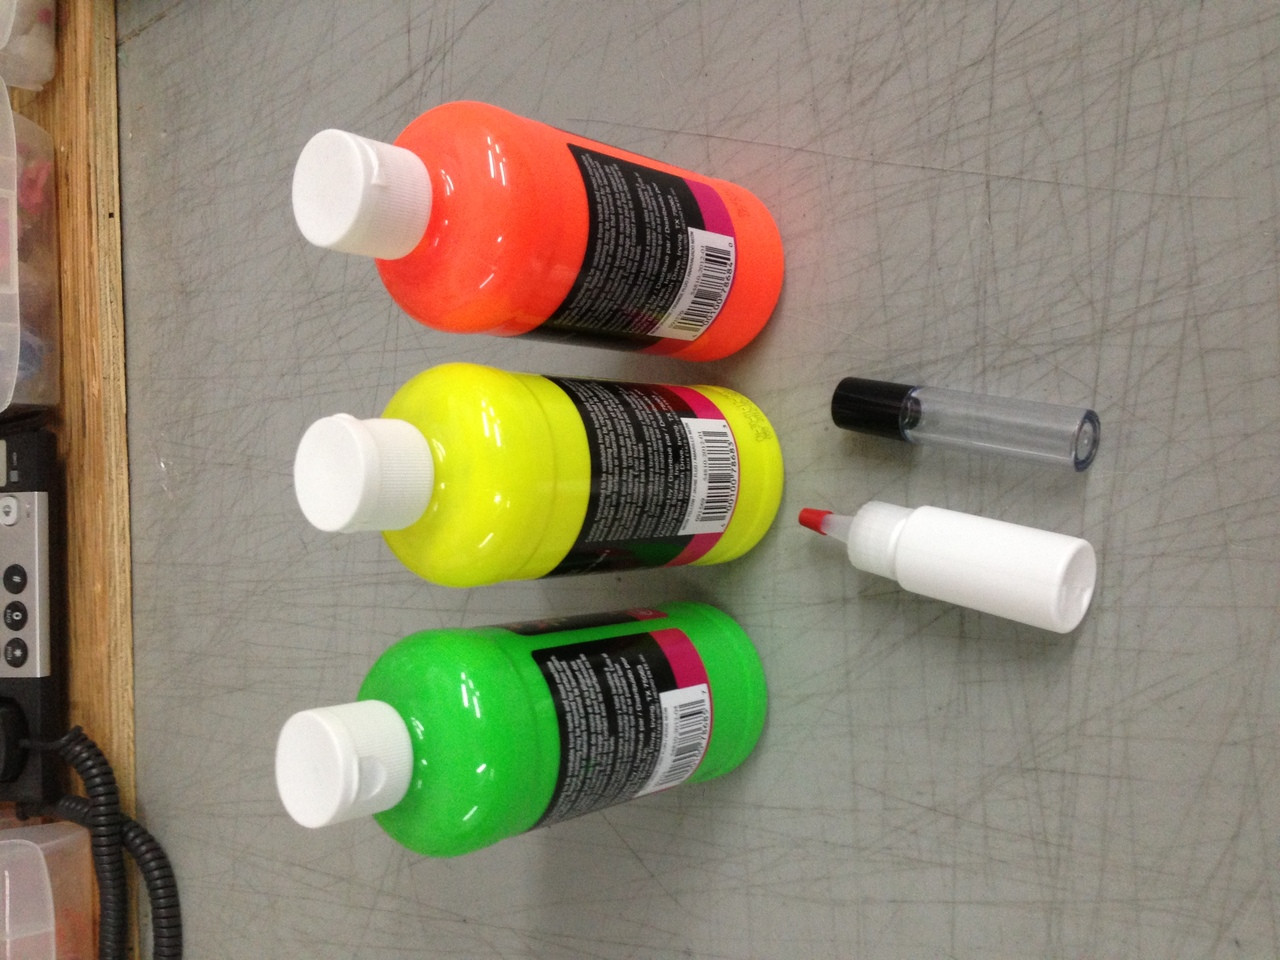 glow,Paint,GLOW PAINT,Glow Party,nightclub,Paint,pintura,UV, Uv Reactive, NightlcubShop , supply,supplies,bulk,wholesale